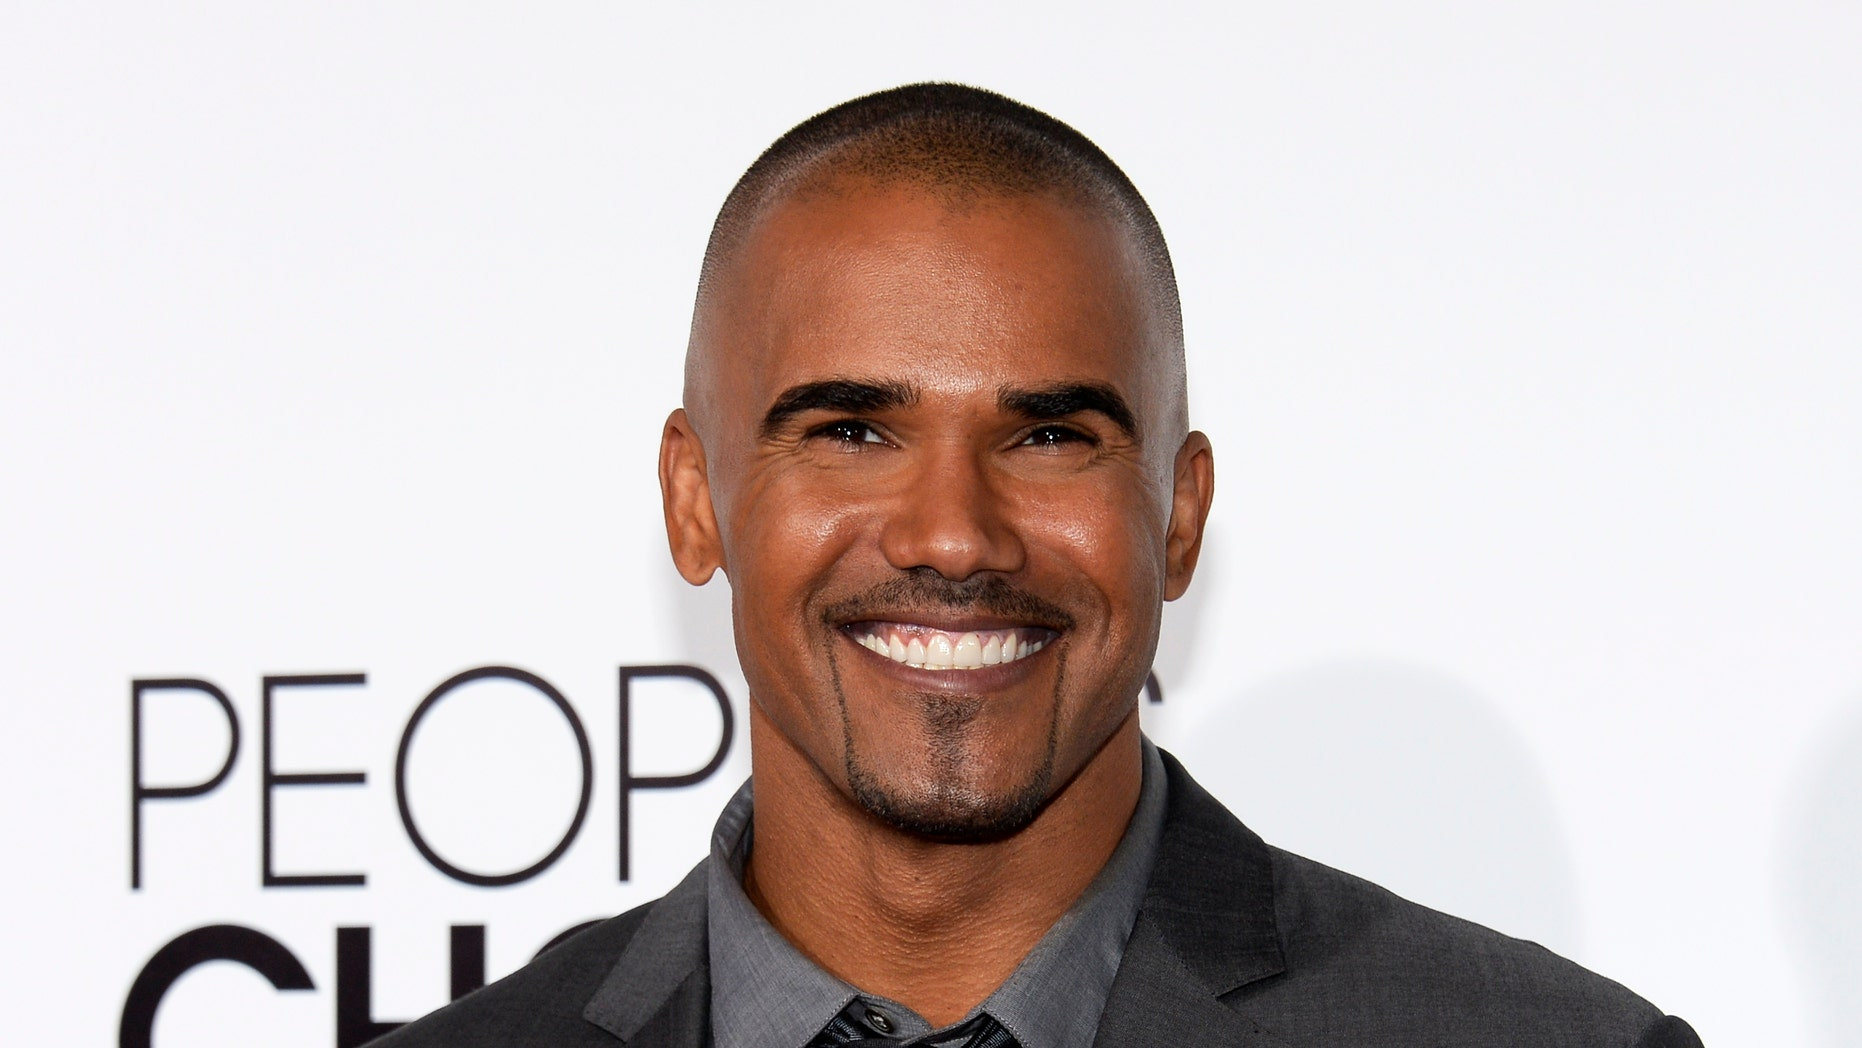 Actor Shemar Moore arrives at the 2014 People's Choice Awards in Los Angeles, California January 8, 2014.